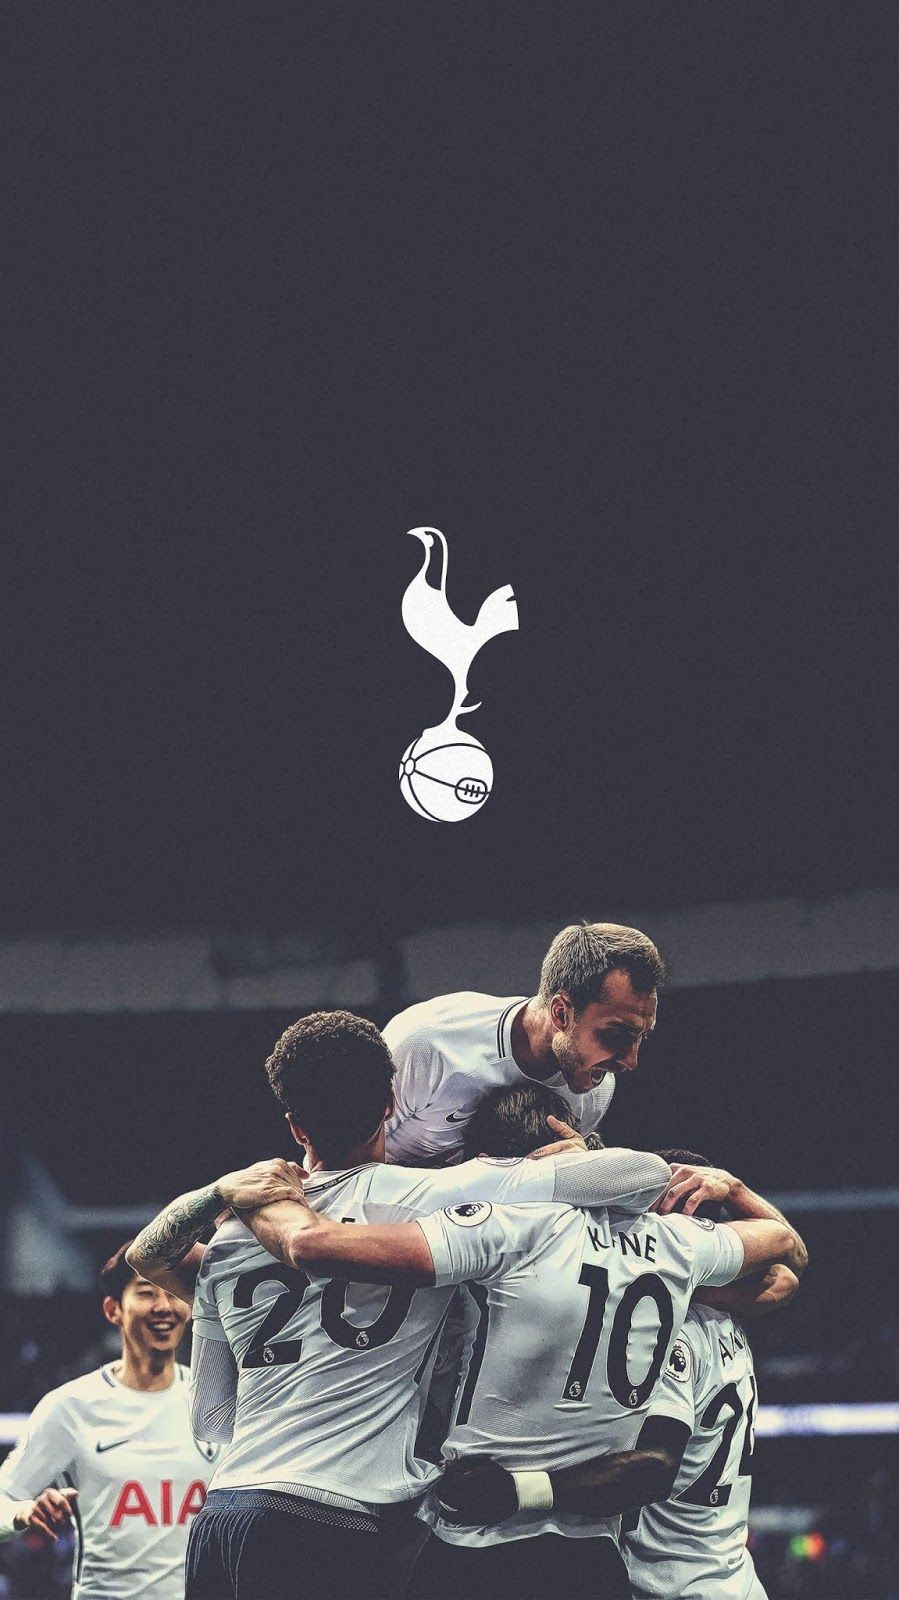 Tottenham Hotspur Iphone Wallpaper In 2020 Tottenham Wallpaper Tottenham Hotspur Wallpaper Tottenham Hotspur